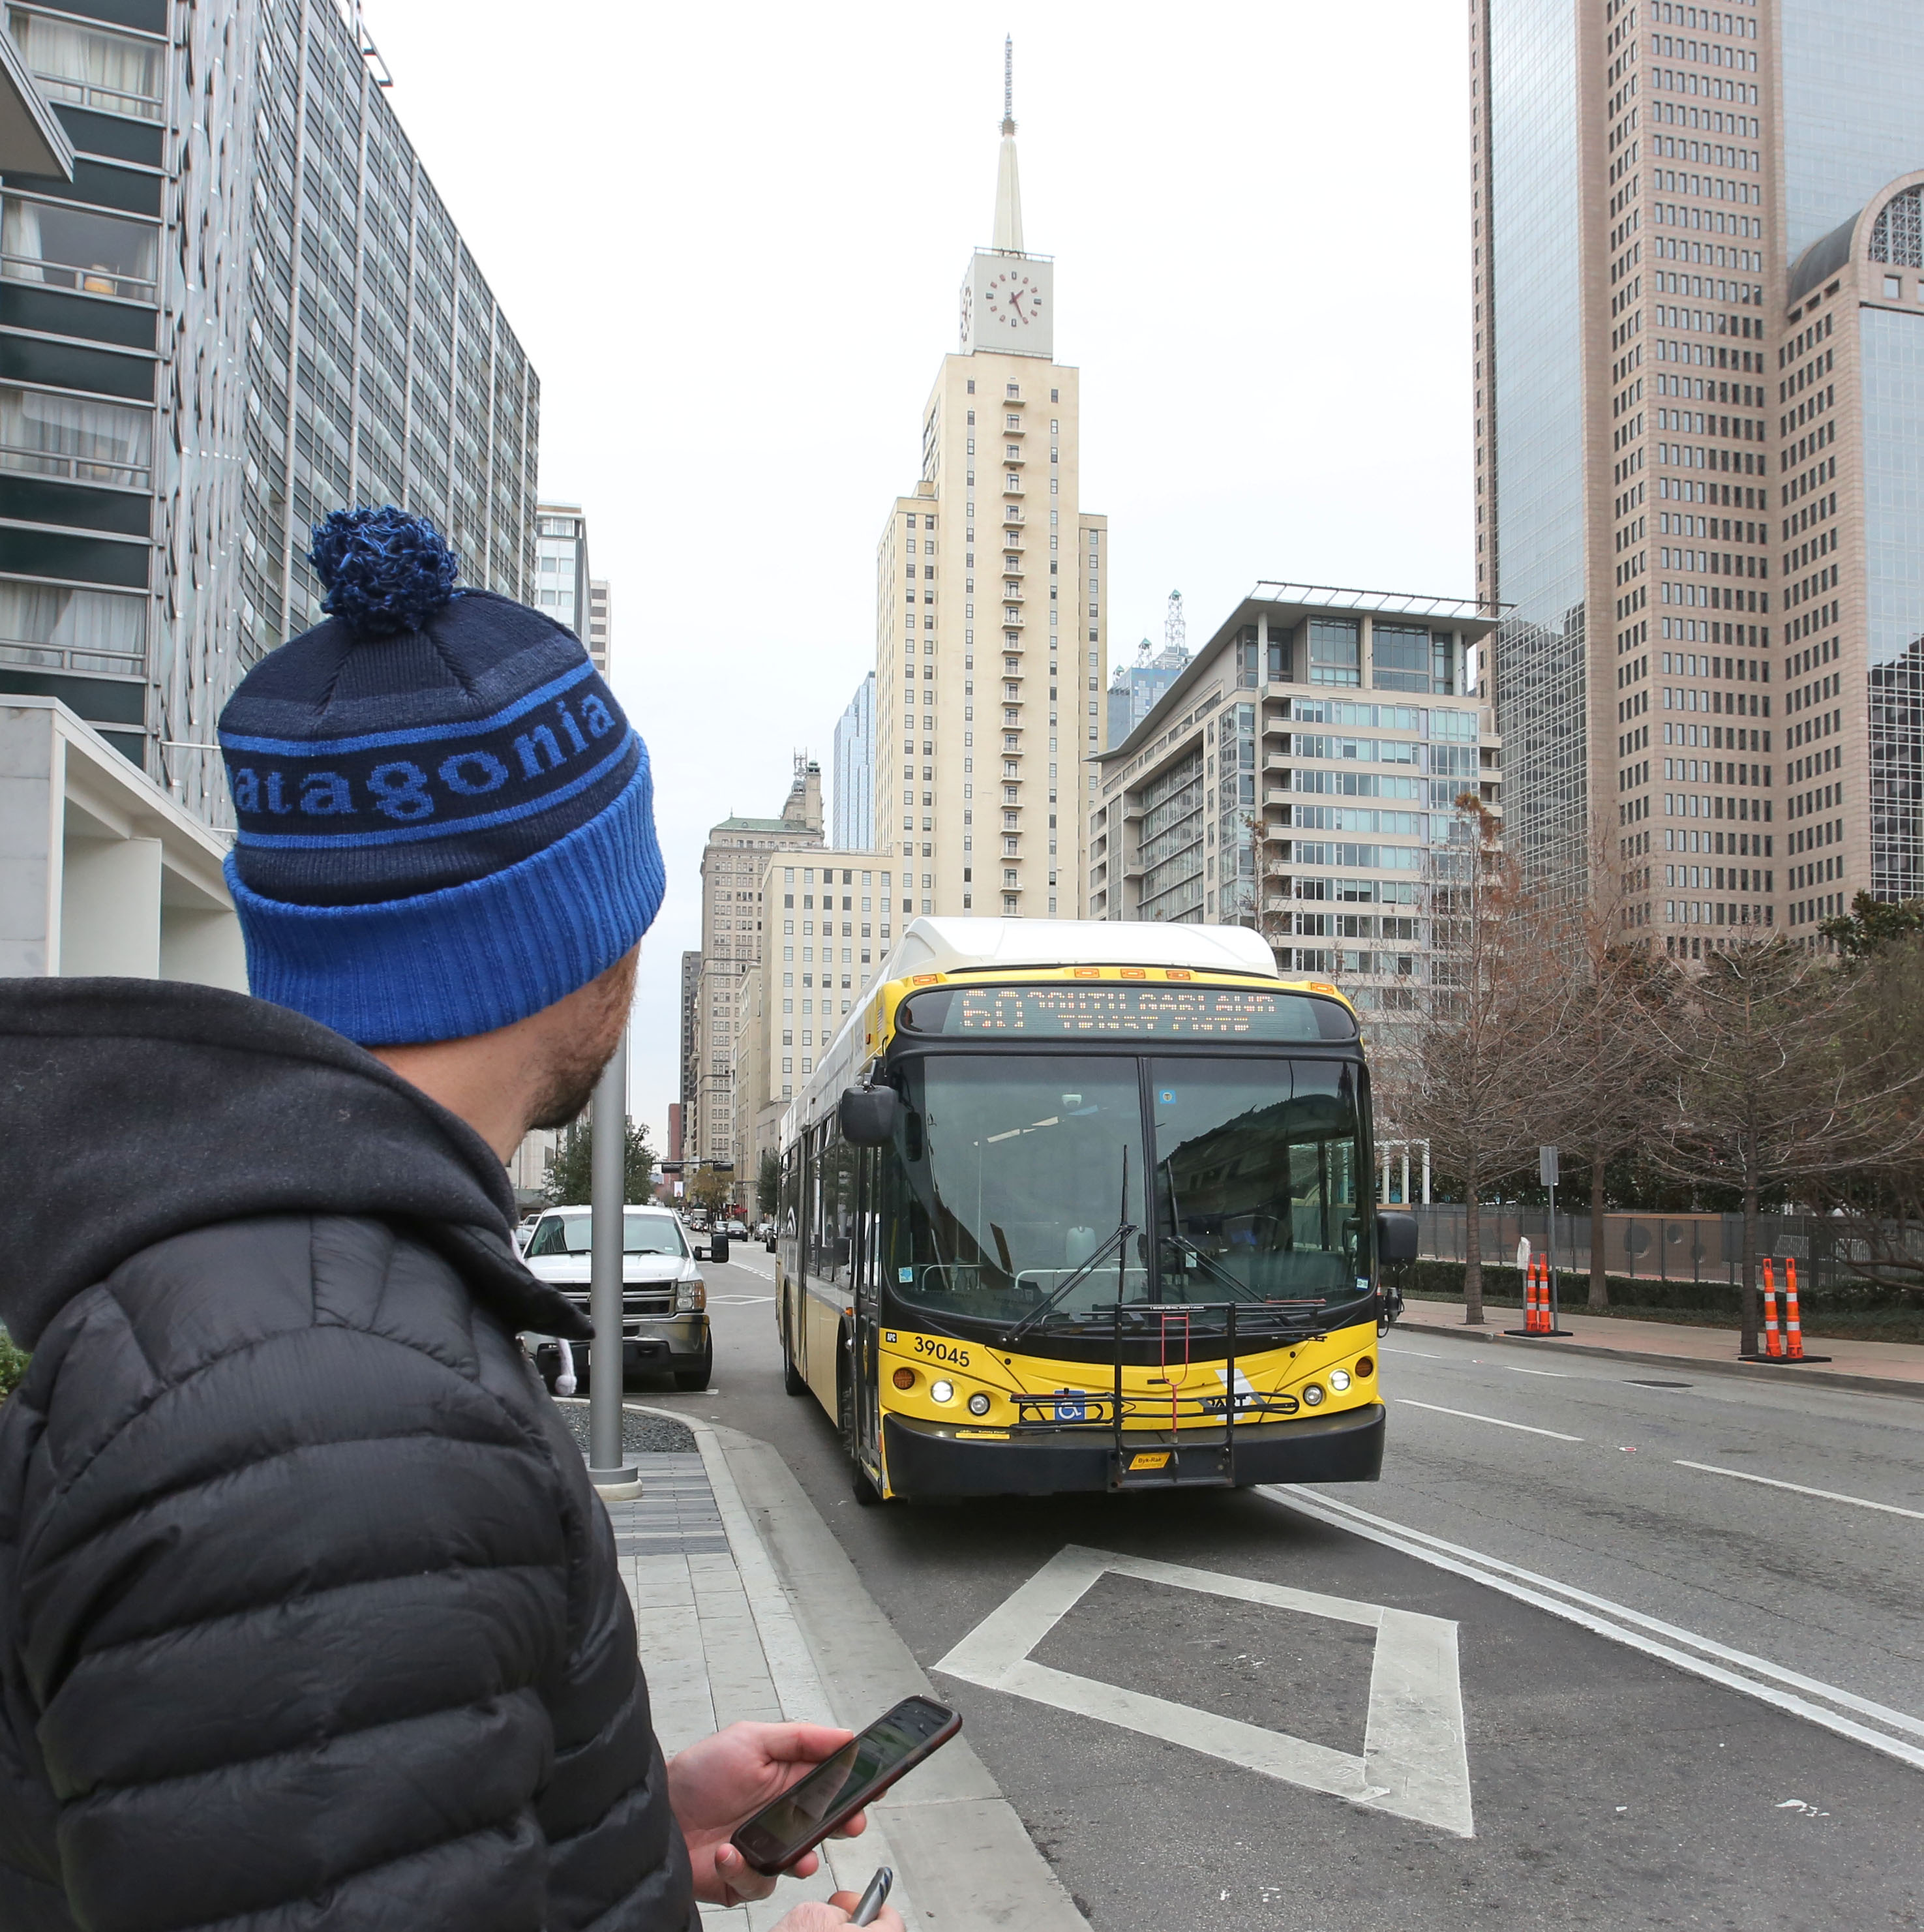 Curious Texas Can I use public transit to tour DallasFort Worth